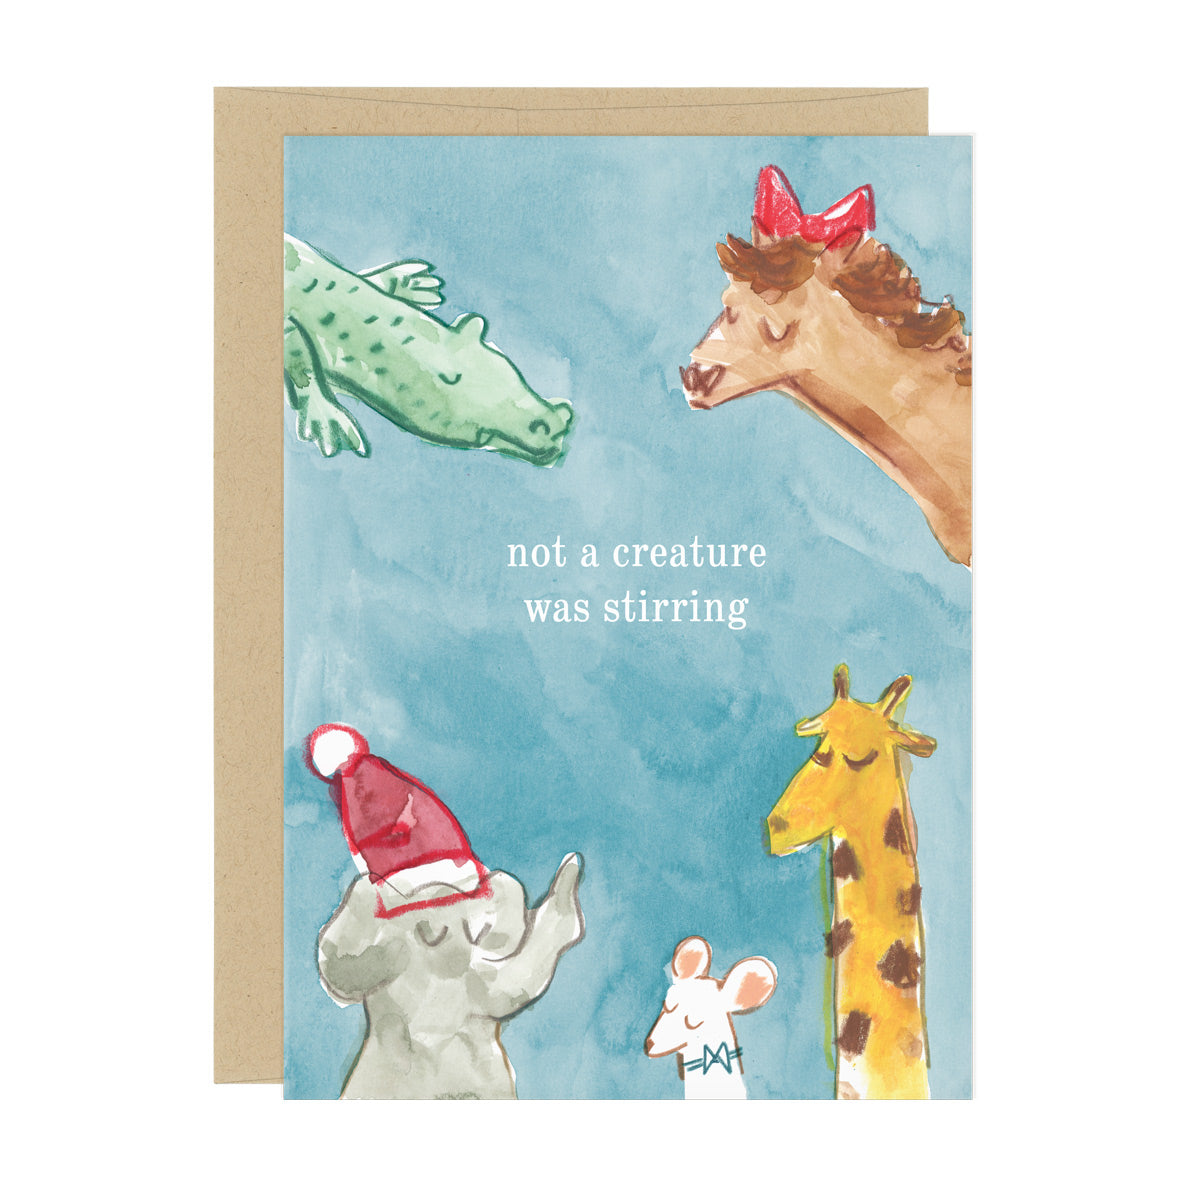 "A Christmas card on which five animals, an alligator, horse, elephant, mouse, and giraffe, wearing Christmas hats and bows, are all asleep. In the center, text reads ""not a creature was stirring"""